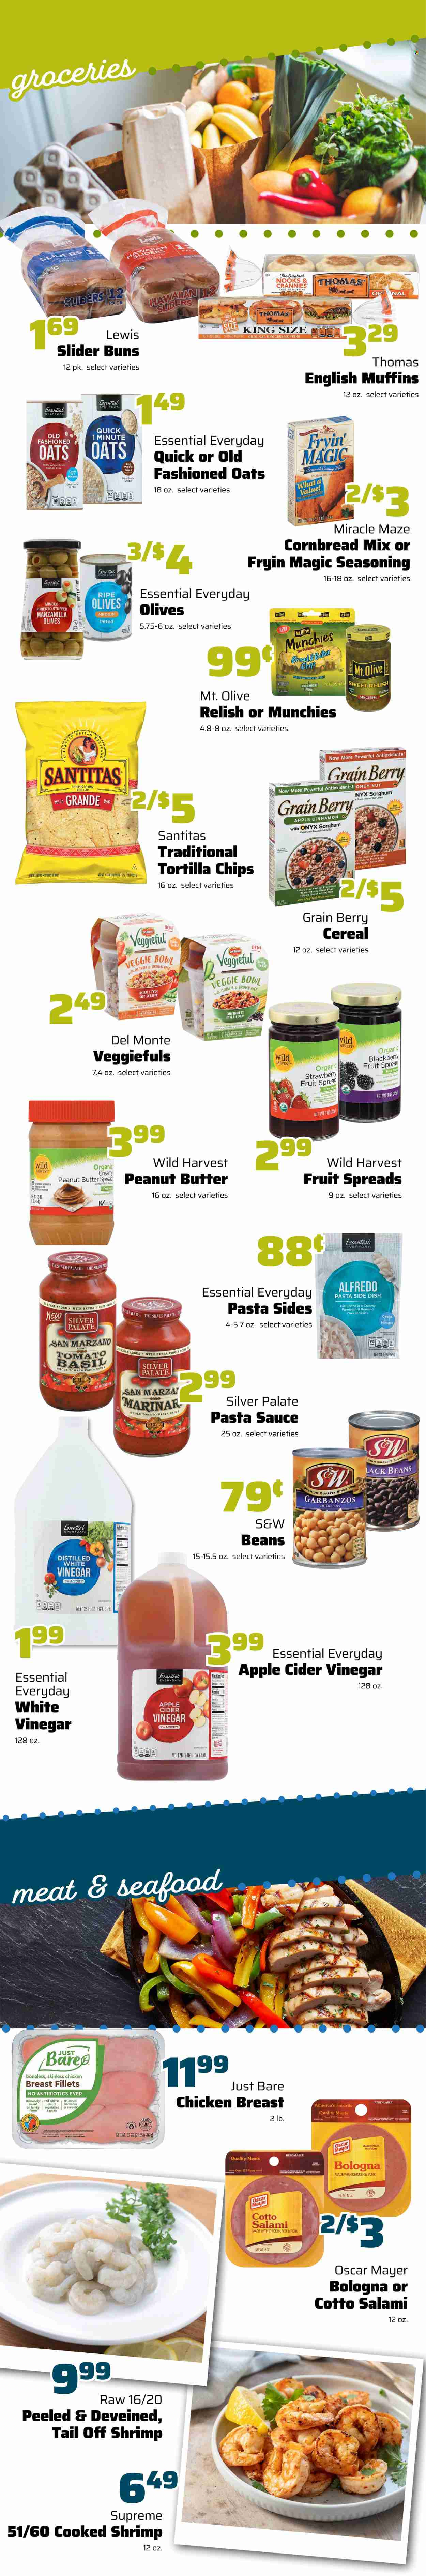 County Market Home & Health Ad from september 15 to 21 2021 - Page 3